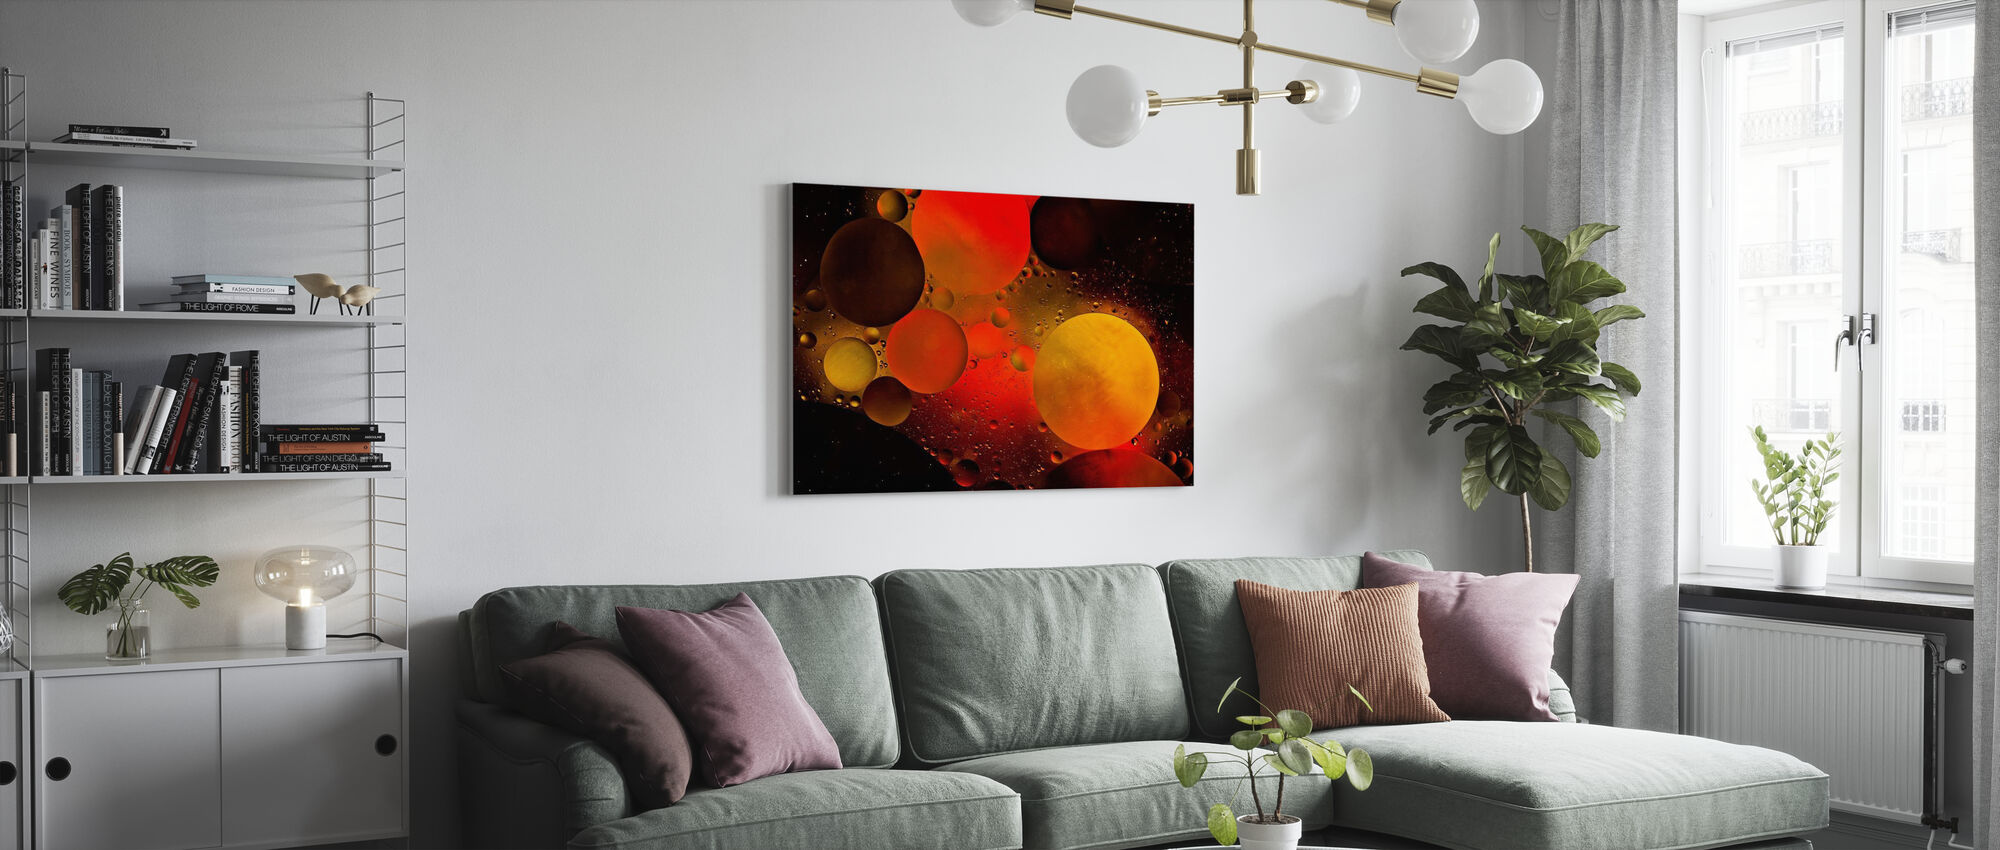 Astronomical - Canvas print - Living Room